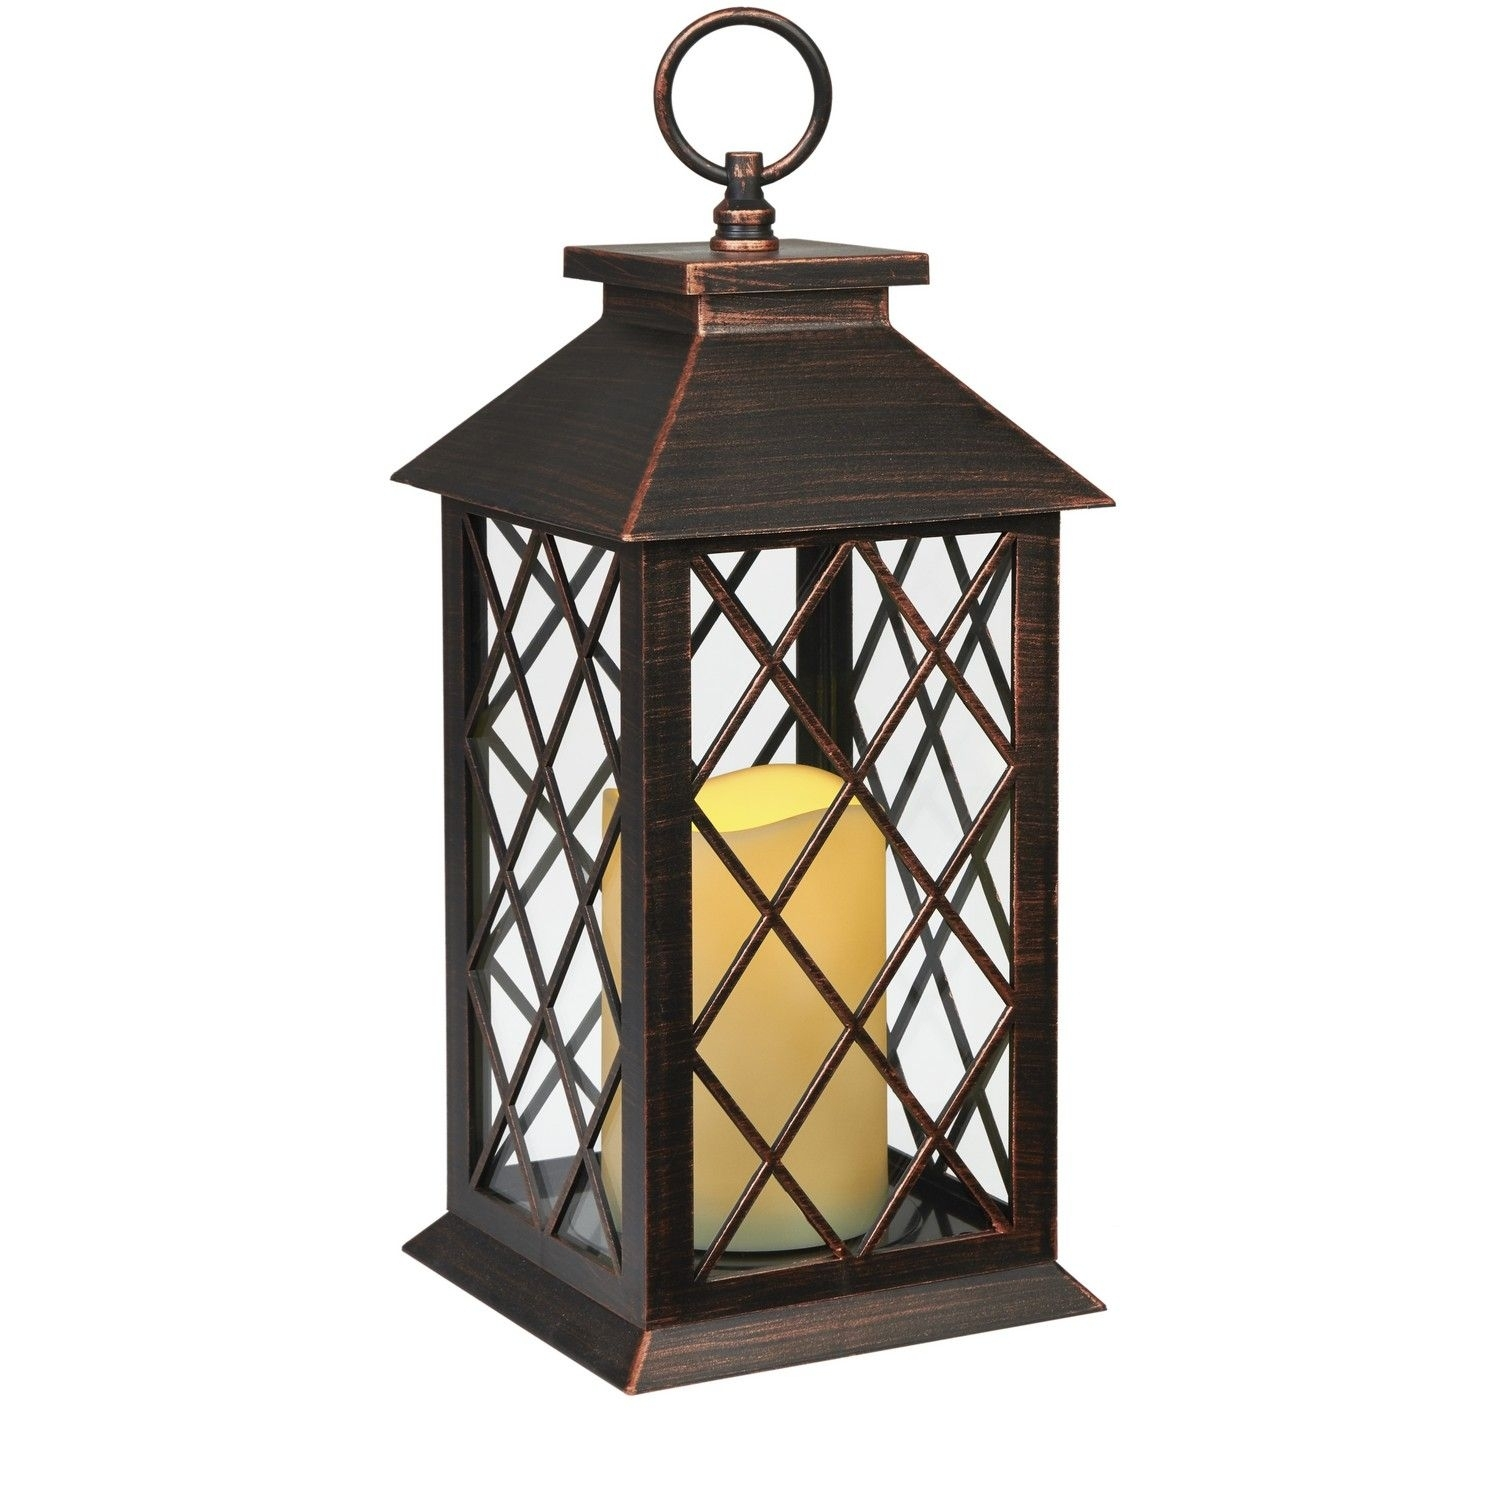 Bronze Plastic Candle Lanterns With Led Candle Installed: Size:14Cm Within Outdoor Lanterns With Led Candles (View 16 of 20)